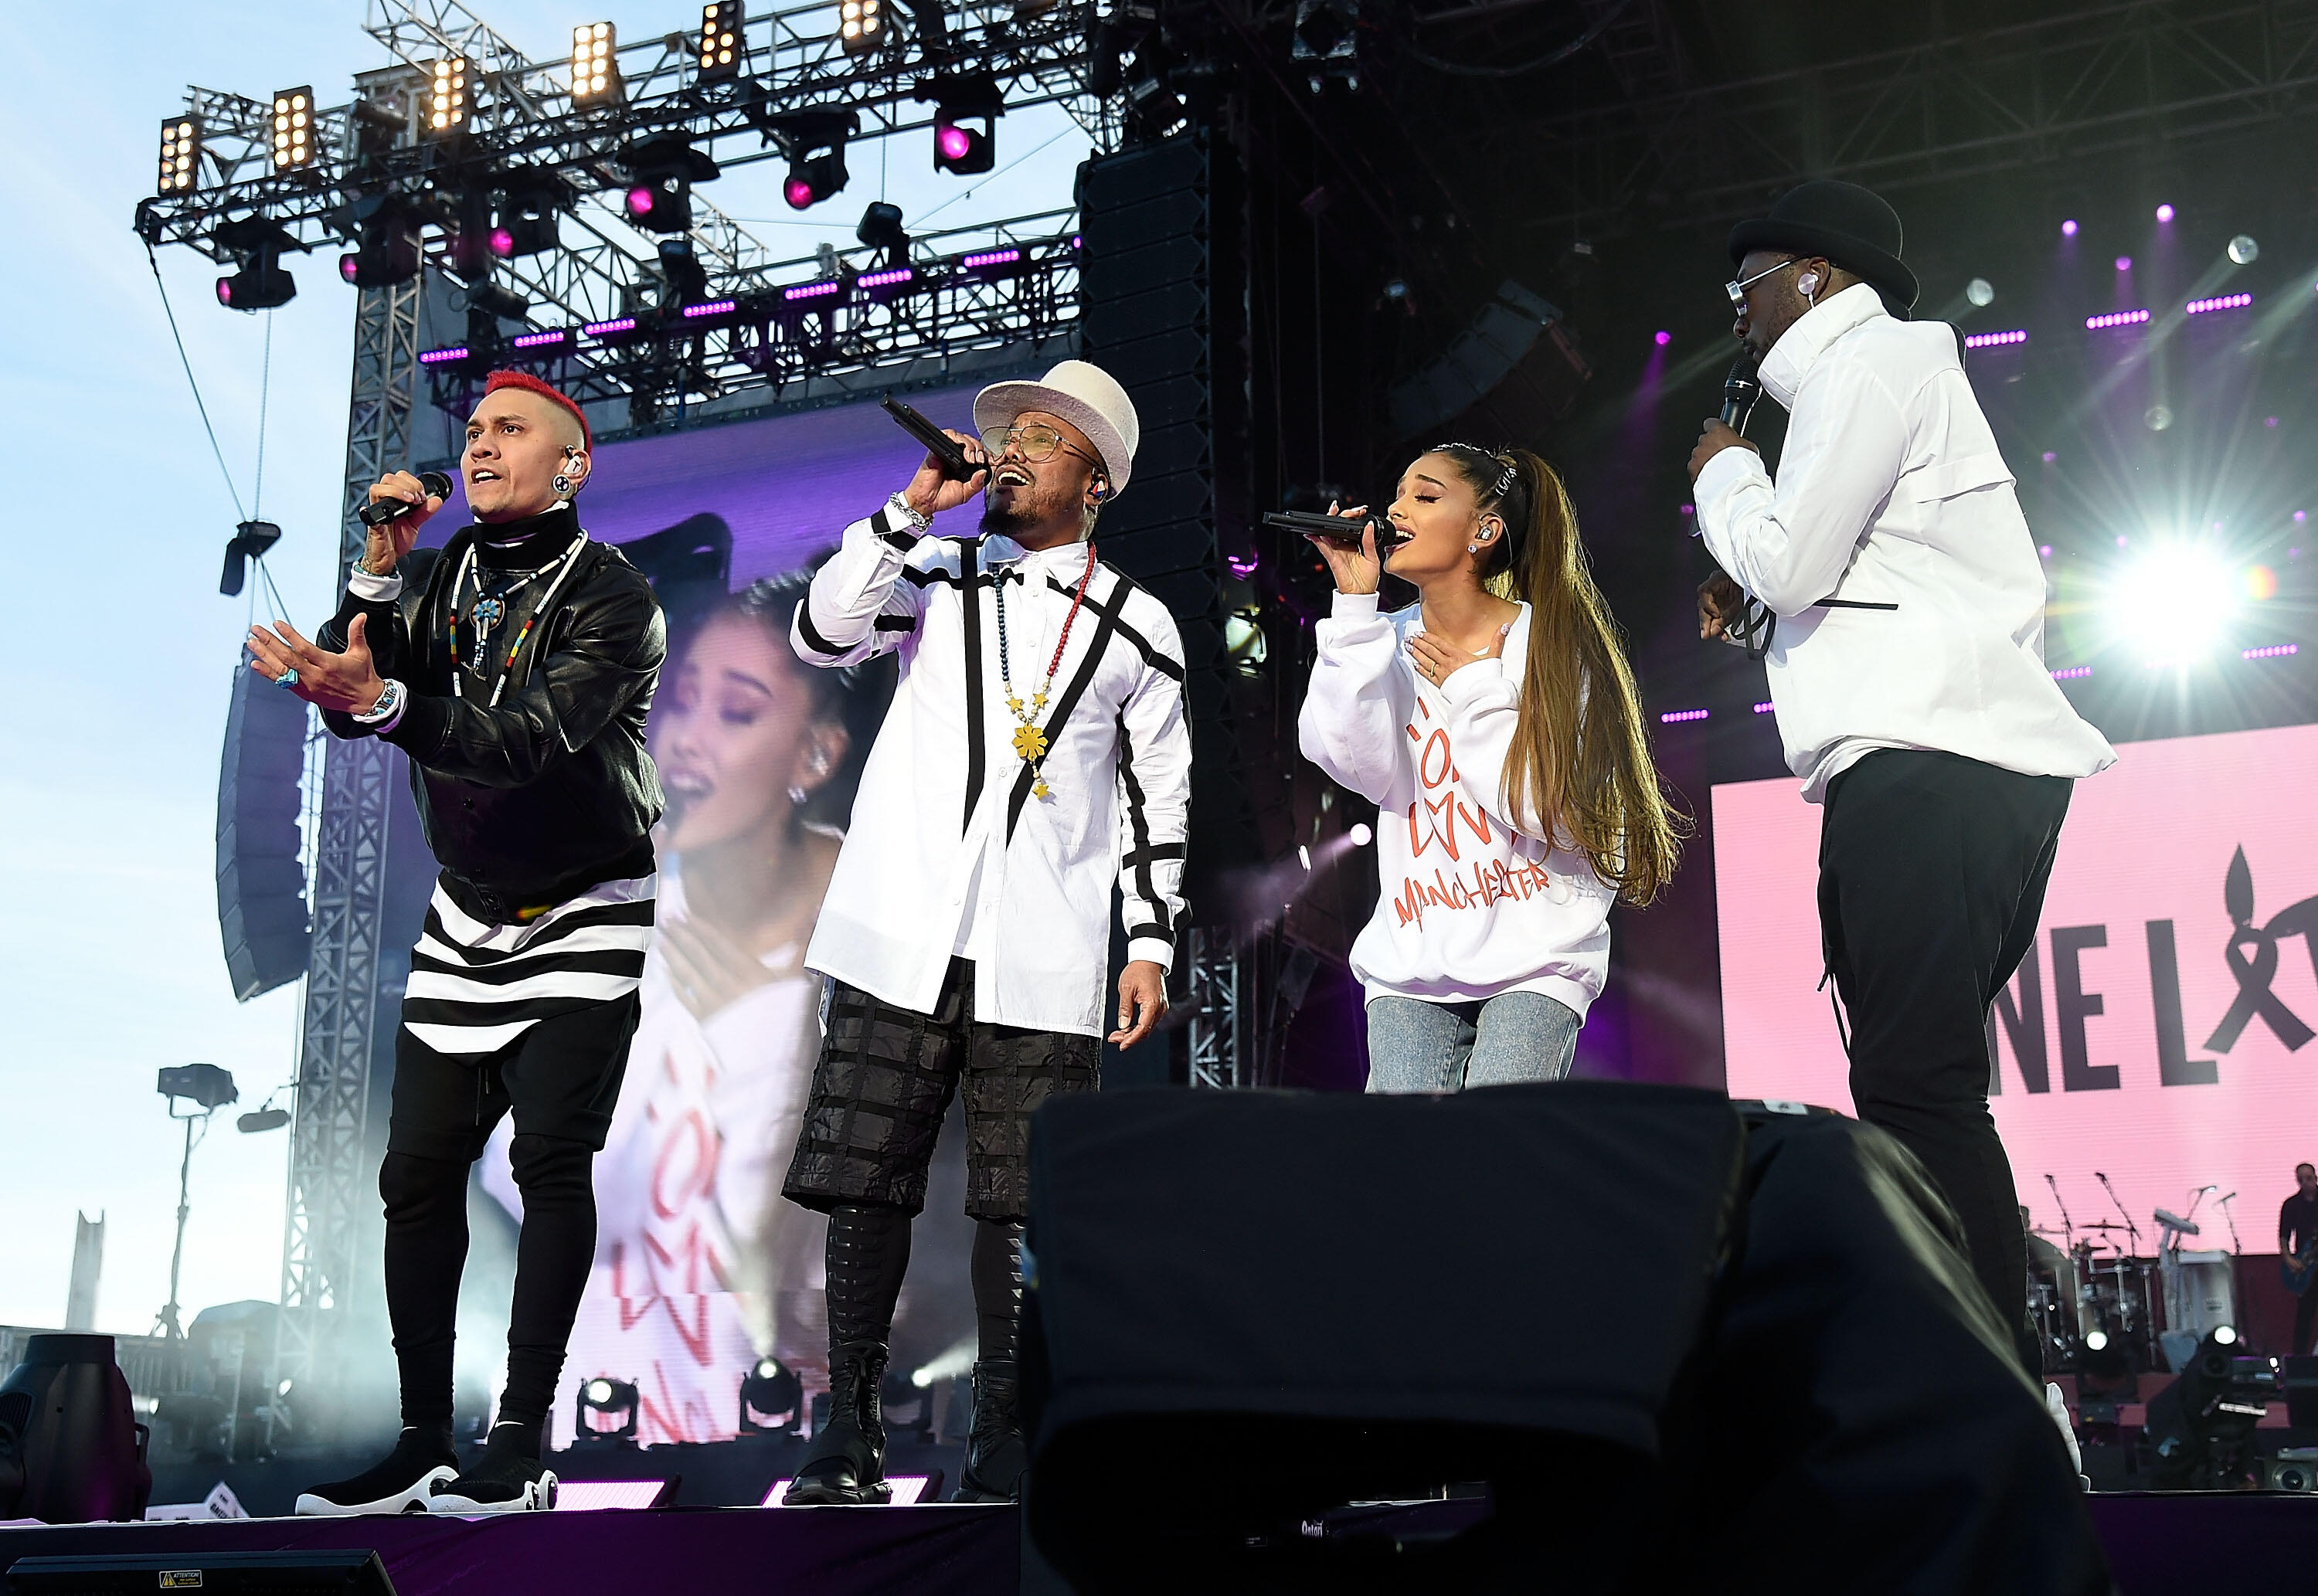 MANCHESTER, ENGLAND - JUNE 04:  Ariana Grande performs on stage with Taboo (L) apl.de.ap (2nd L) and will.i.am (R) of The Black Eyed Peas during the One Love Manchester Benefit Concert at Old Trafford on June 4, 2017 in Manchester, England.  (Photo by Kev